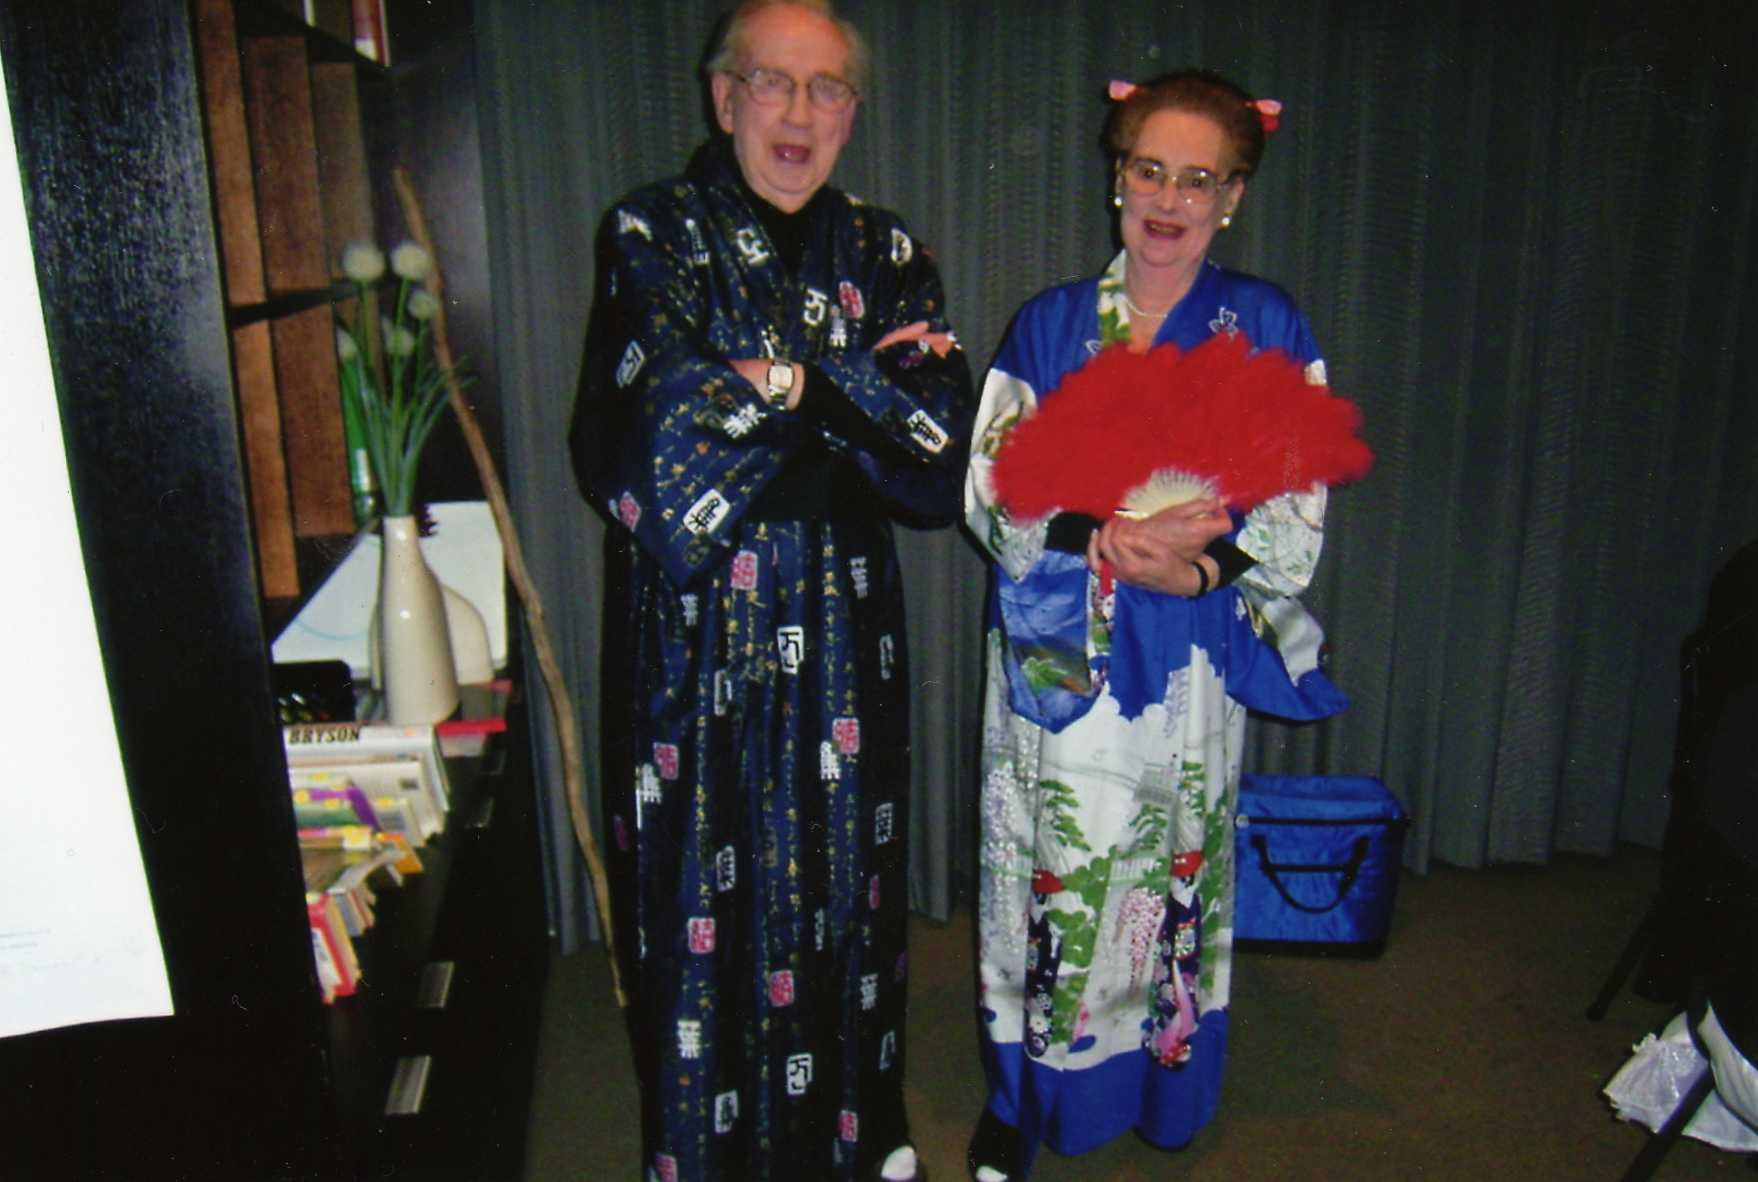 Kathleen, wearing the kimono featured in this story, with Adrian.